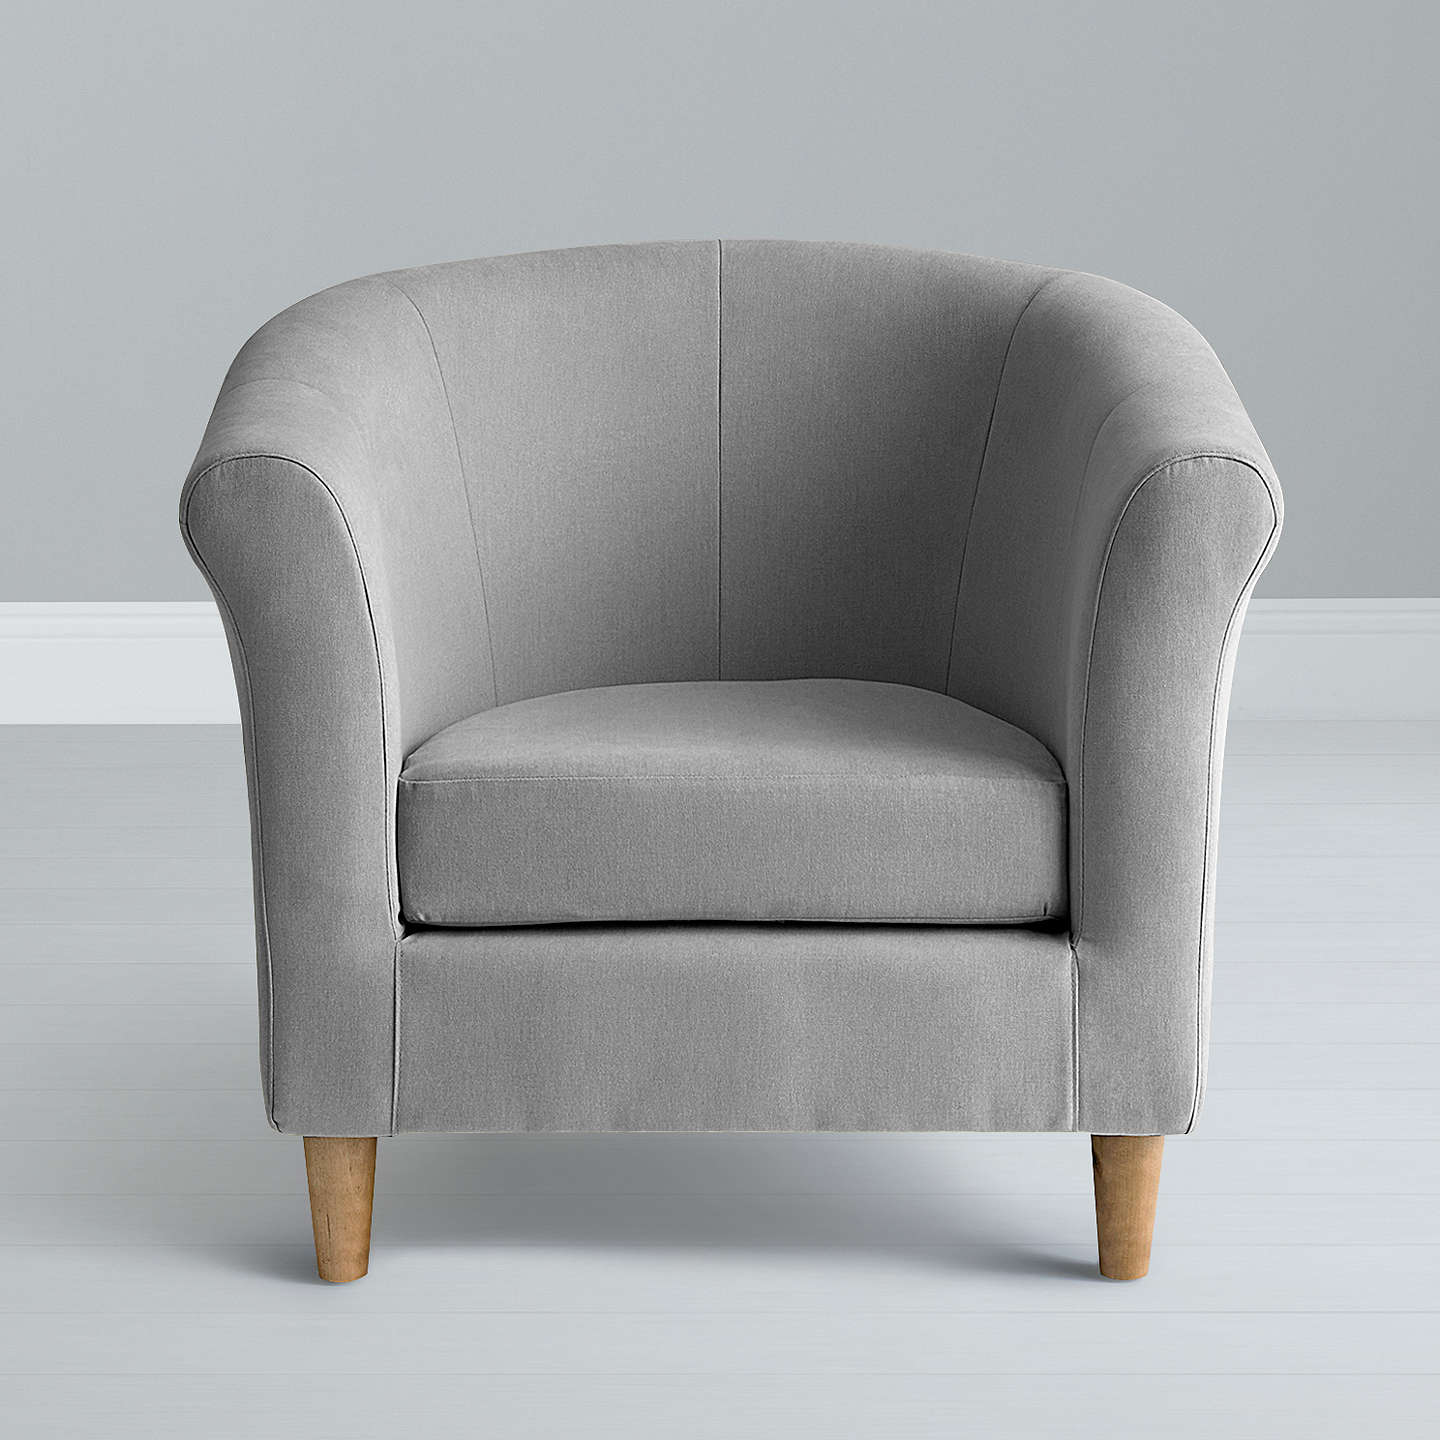 ... BuyJohn Lewis The Basics Juliet Armchair, Light Leg, Grey Online At  Johnlewis.com